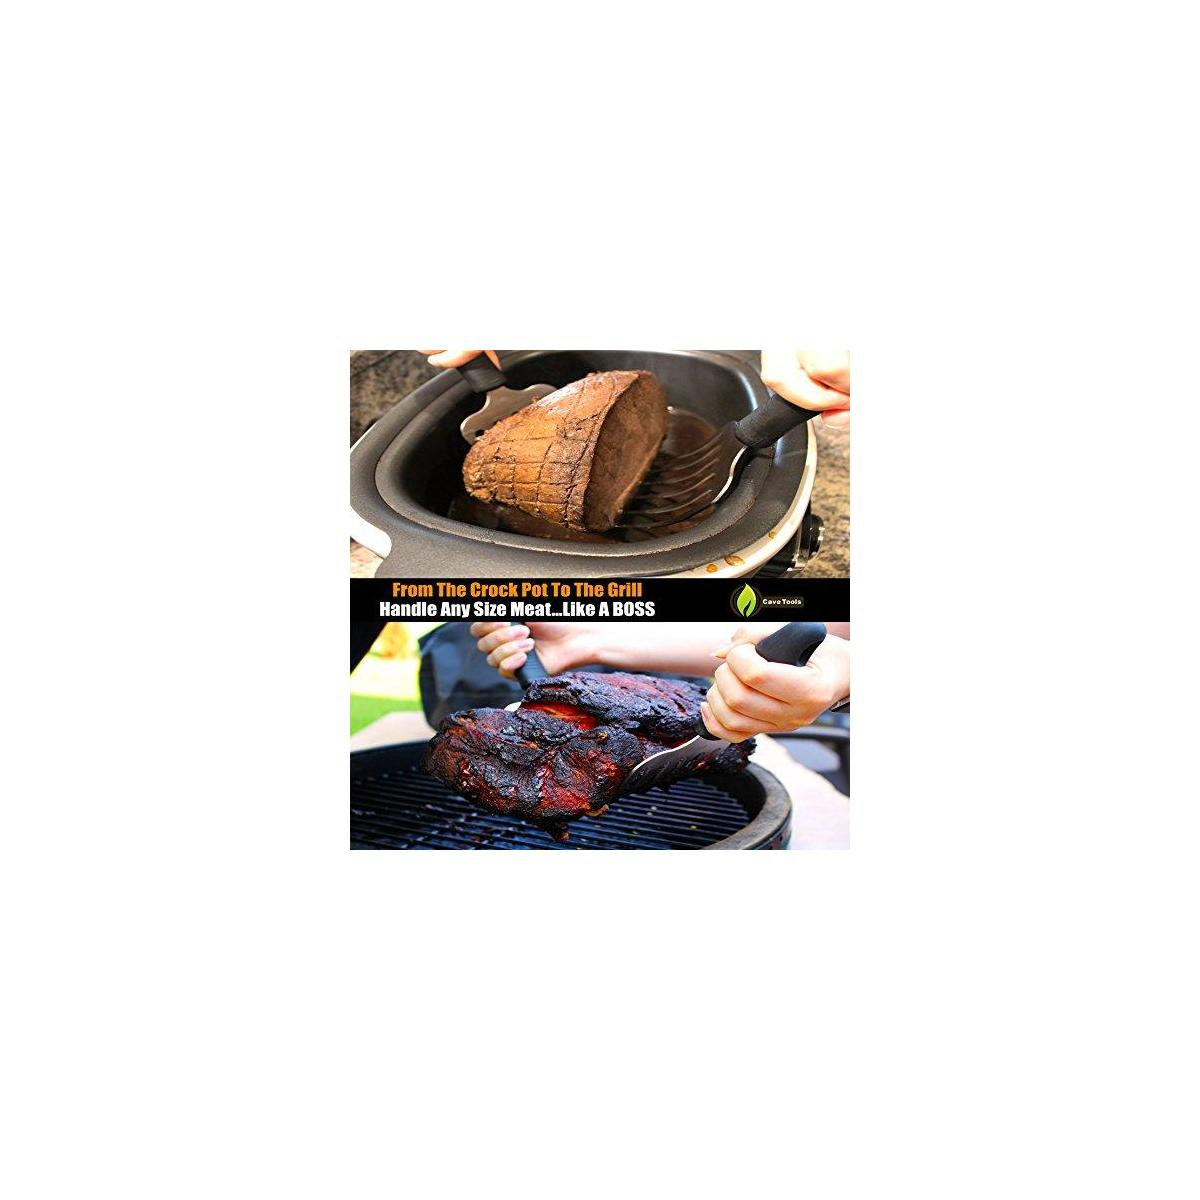 Pulled Pork Shredder Rakes + Beer Can Chicken Roaster Rack - INCLUDES 4 VEGETABLE SPIKES - Stainless Steel Vertical BBQ Roasting Holder - Dishwasher Safe Barbecue Stand & Extra Deep Drip Pan